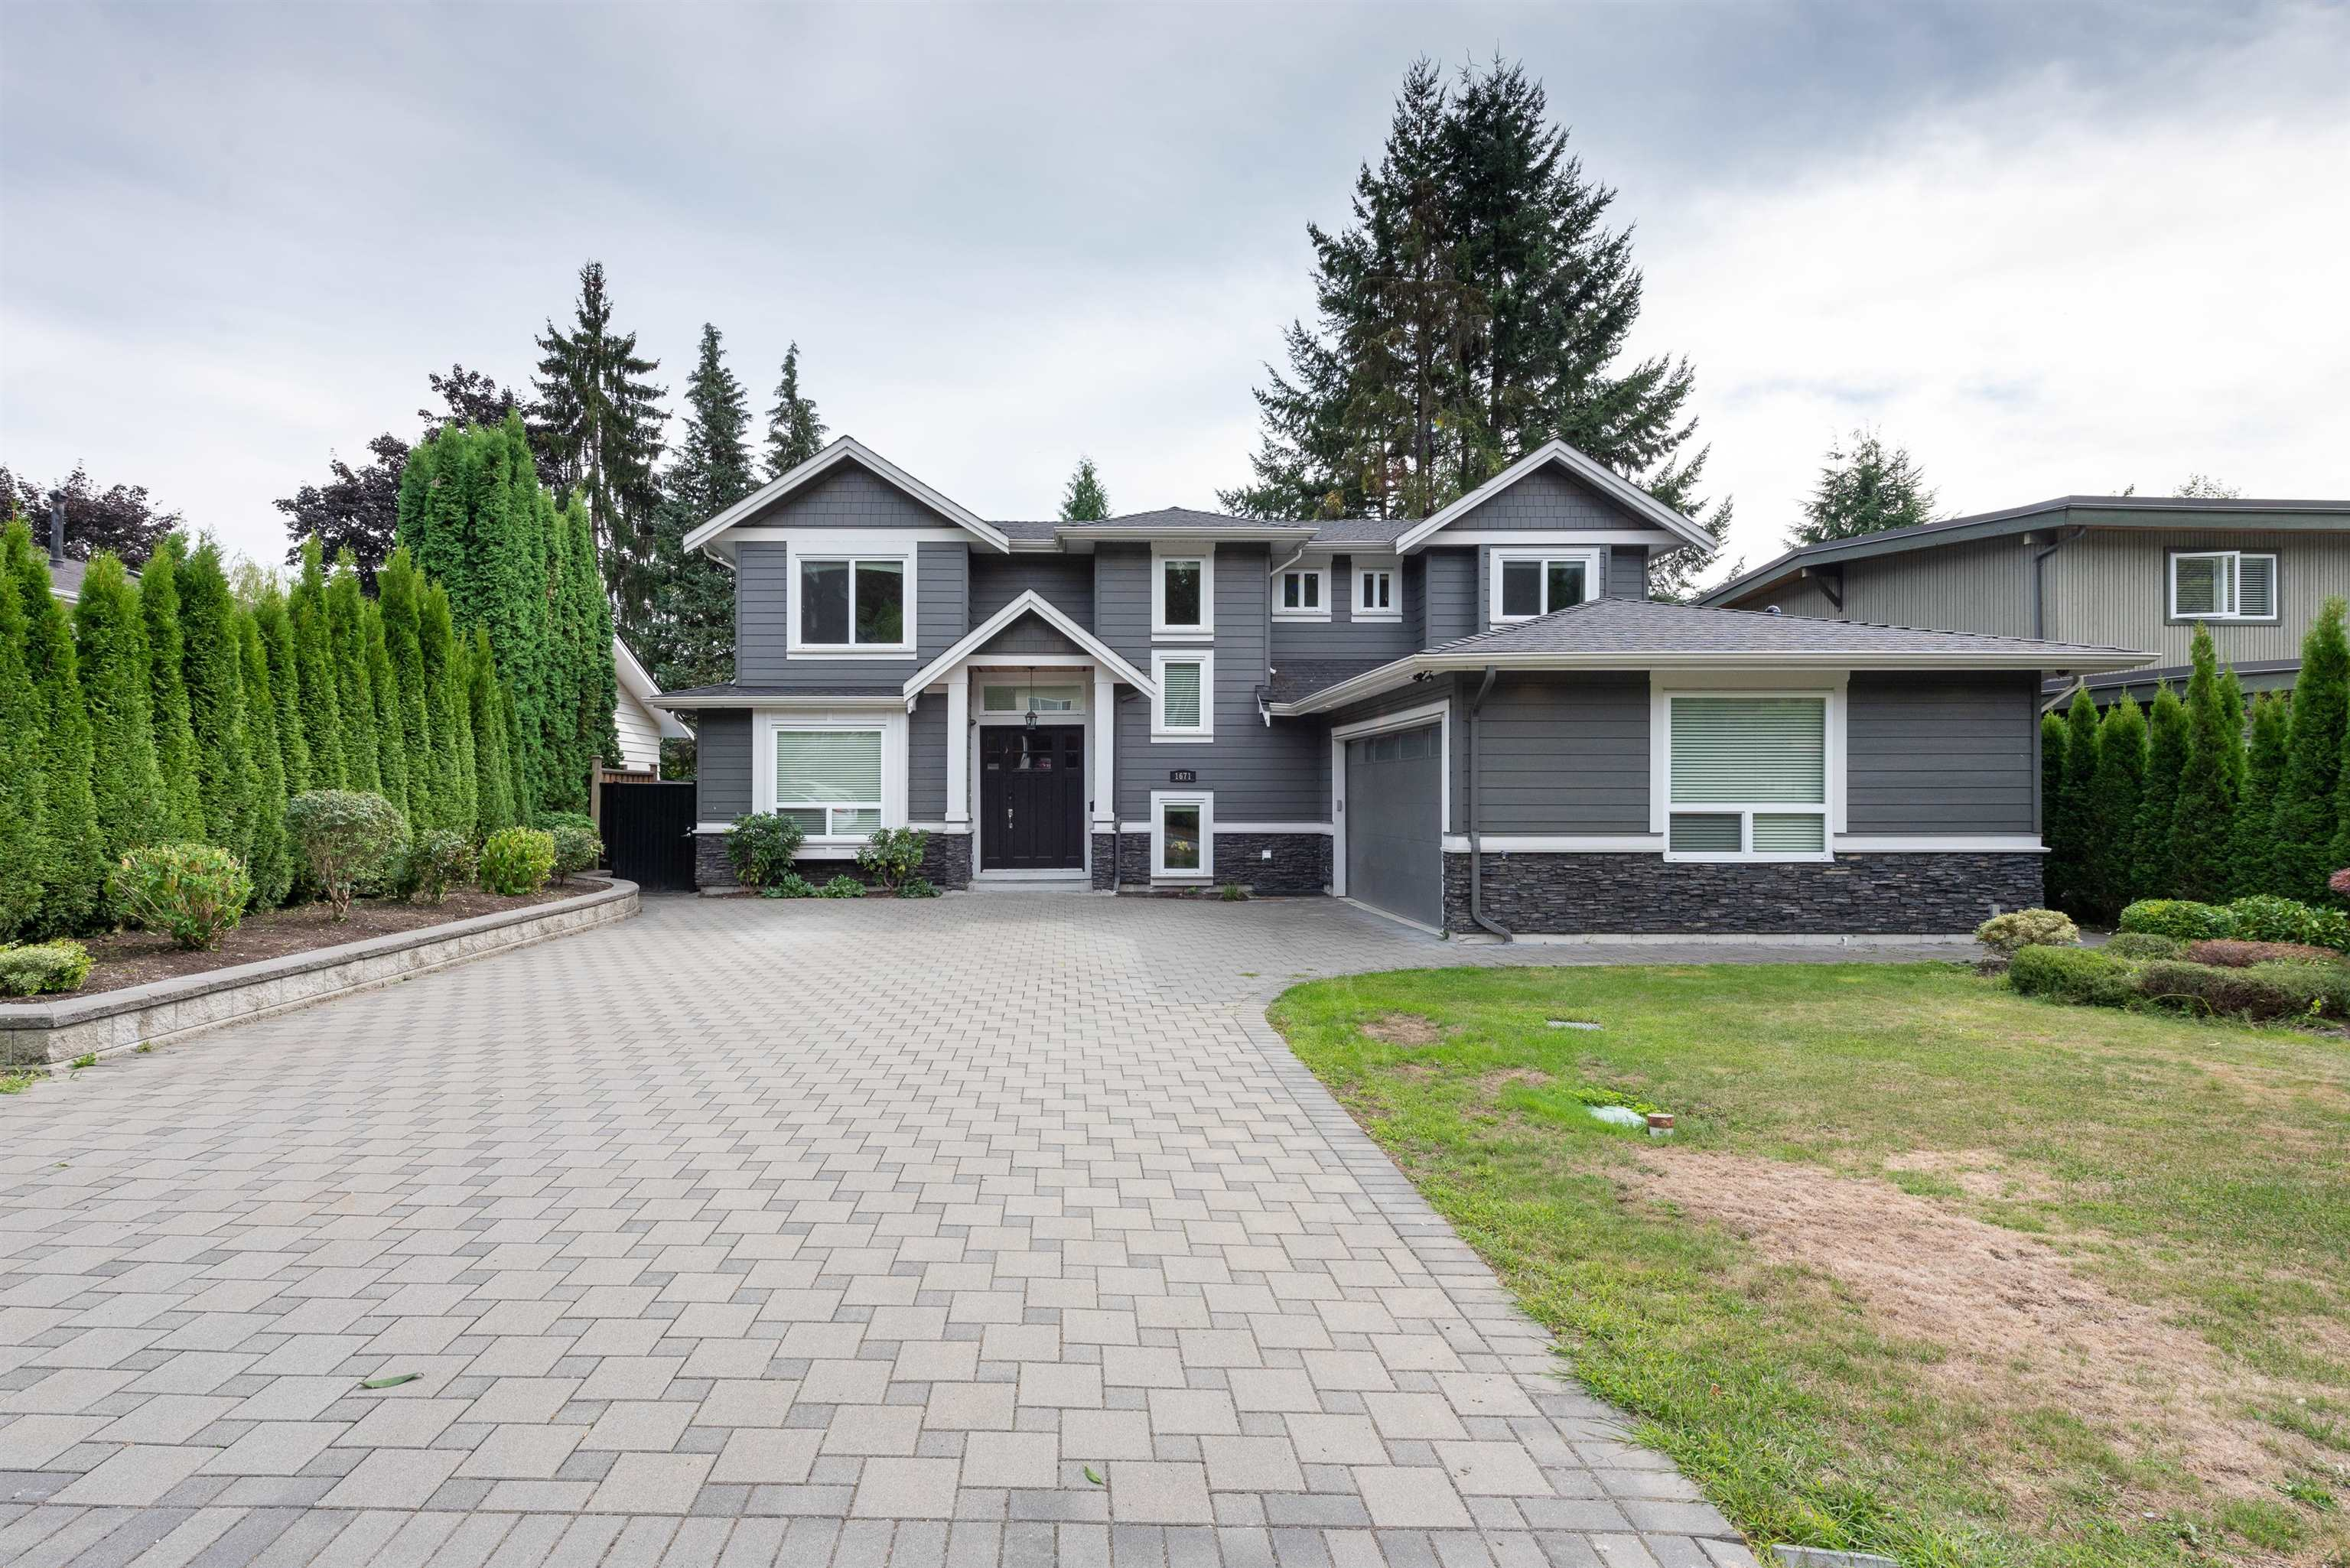 1671 PIERARD ROAD - Lynn Valley House/Single Family for sale, 6 Bedrooms (R2617072) - #2